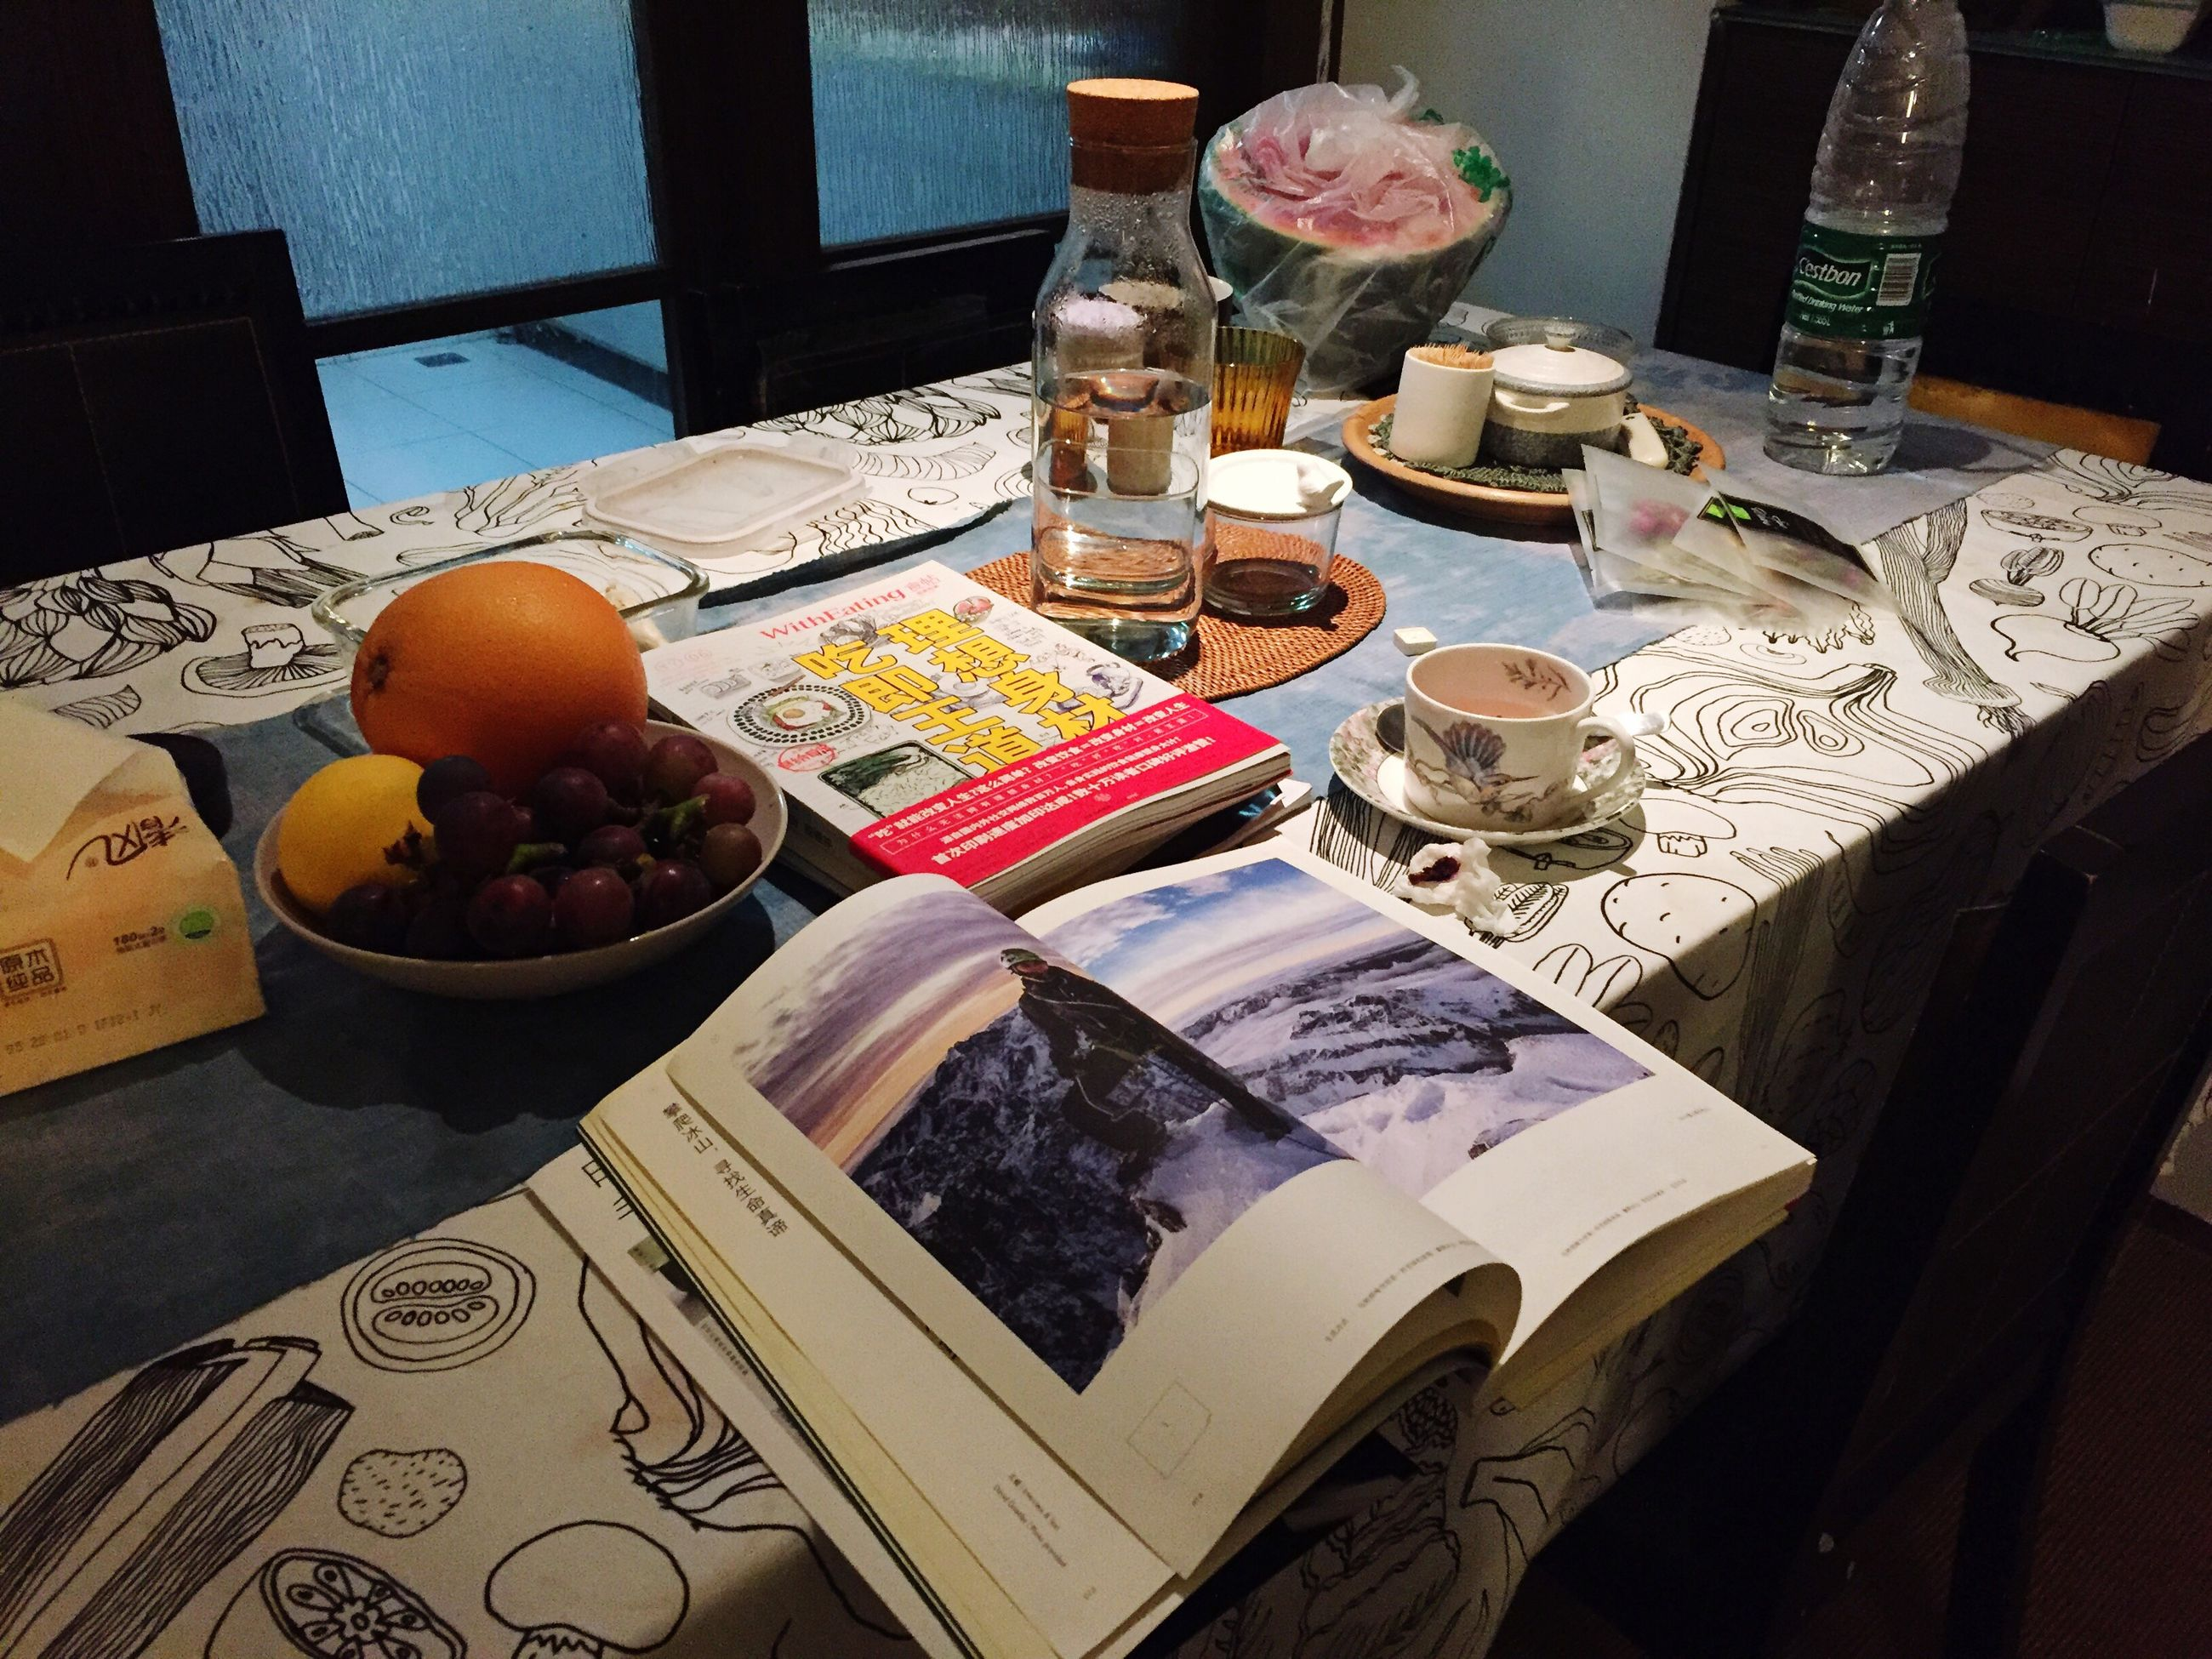 indoors, table, still life, variation, food and drink, freshness, high angle view, text, book, paper, food, choice, home interior, no people, sweet food, communication, large group of objects, western script, close-up, arrangement